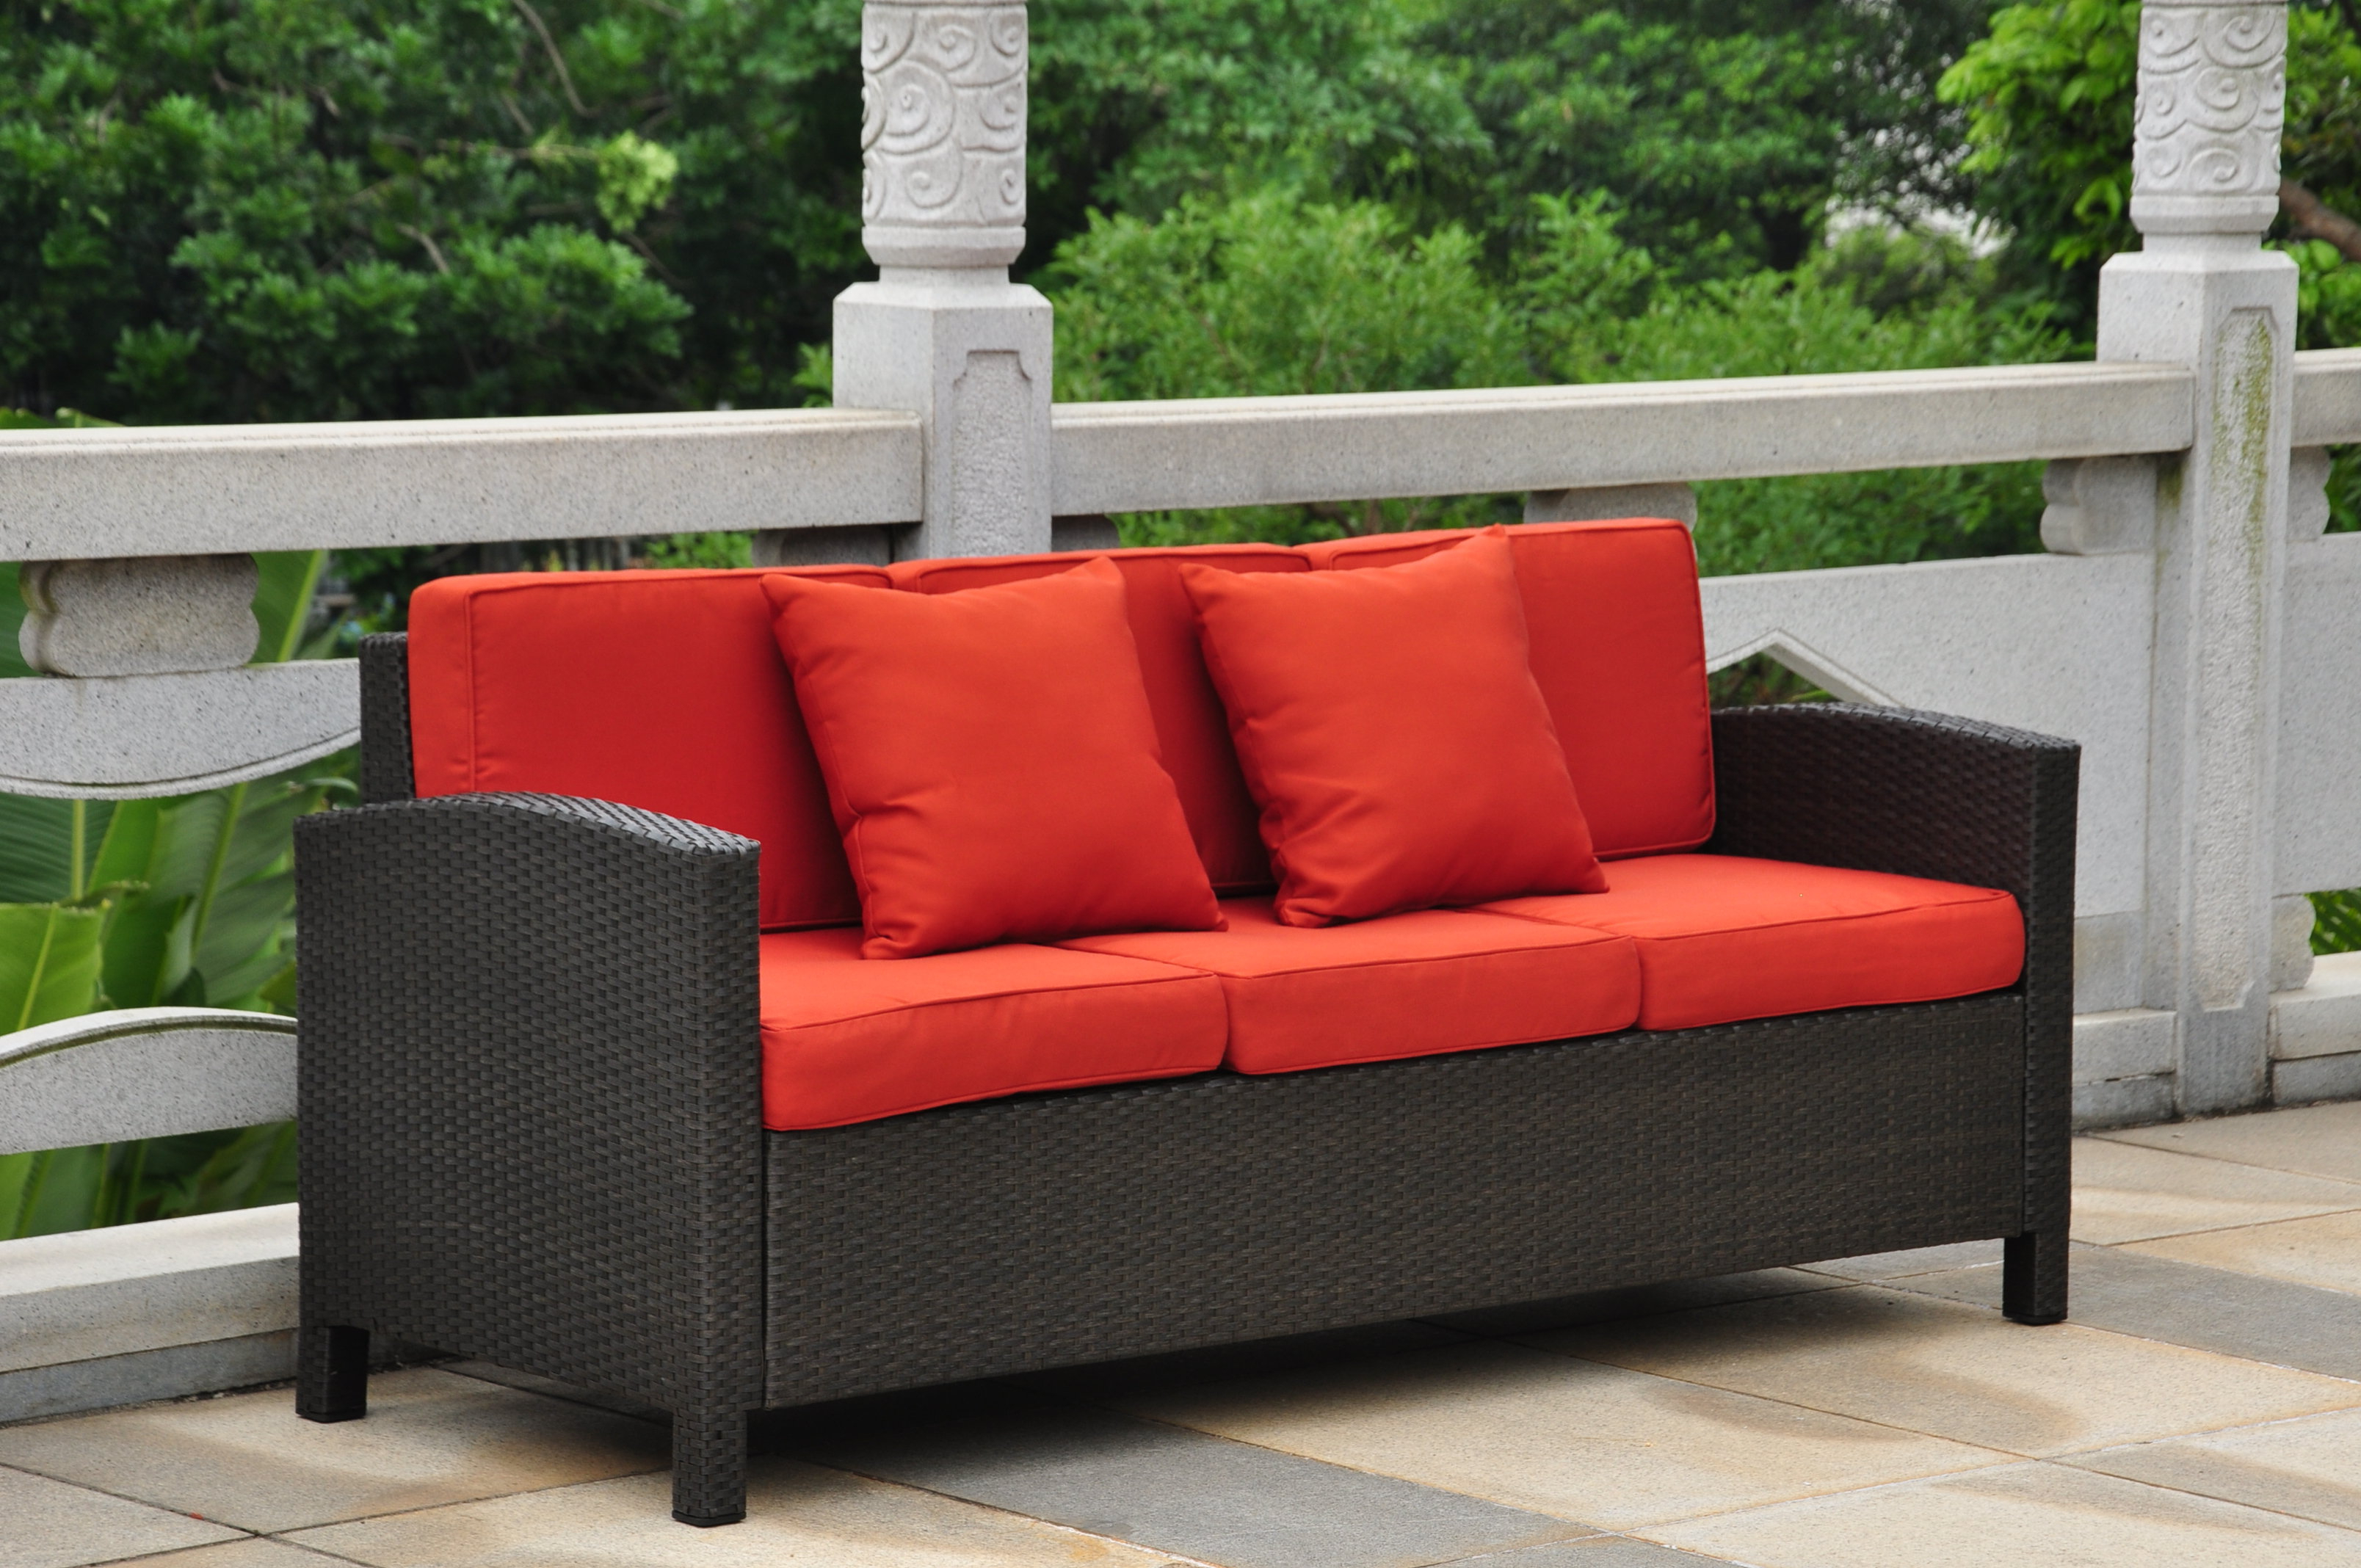 Well Known Katzer Patio Sofas With Cushions With Regard To Katzer Patio Sofa With Cushions (View 20 of 20)